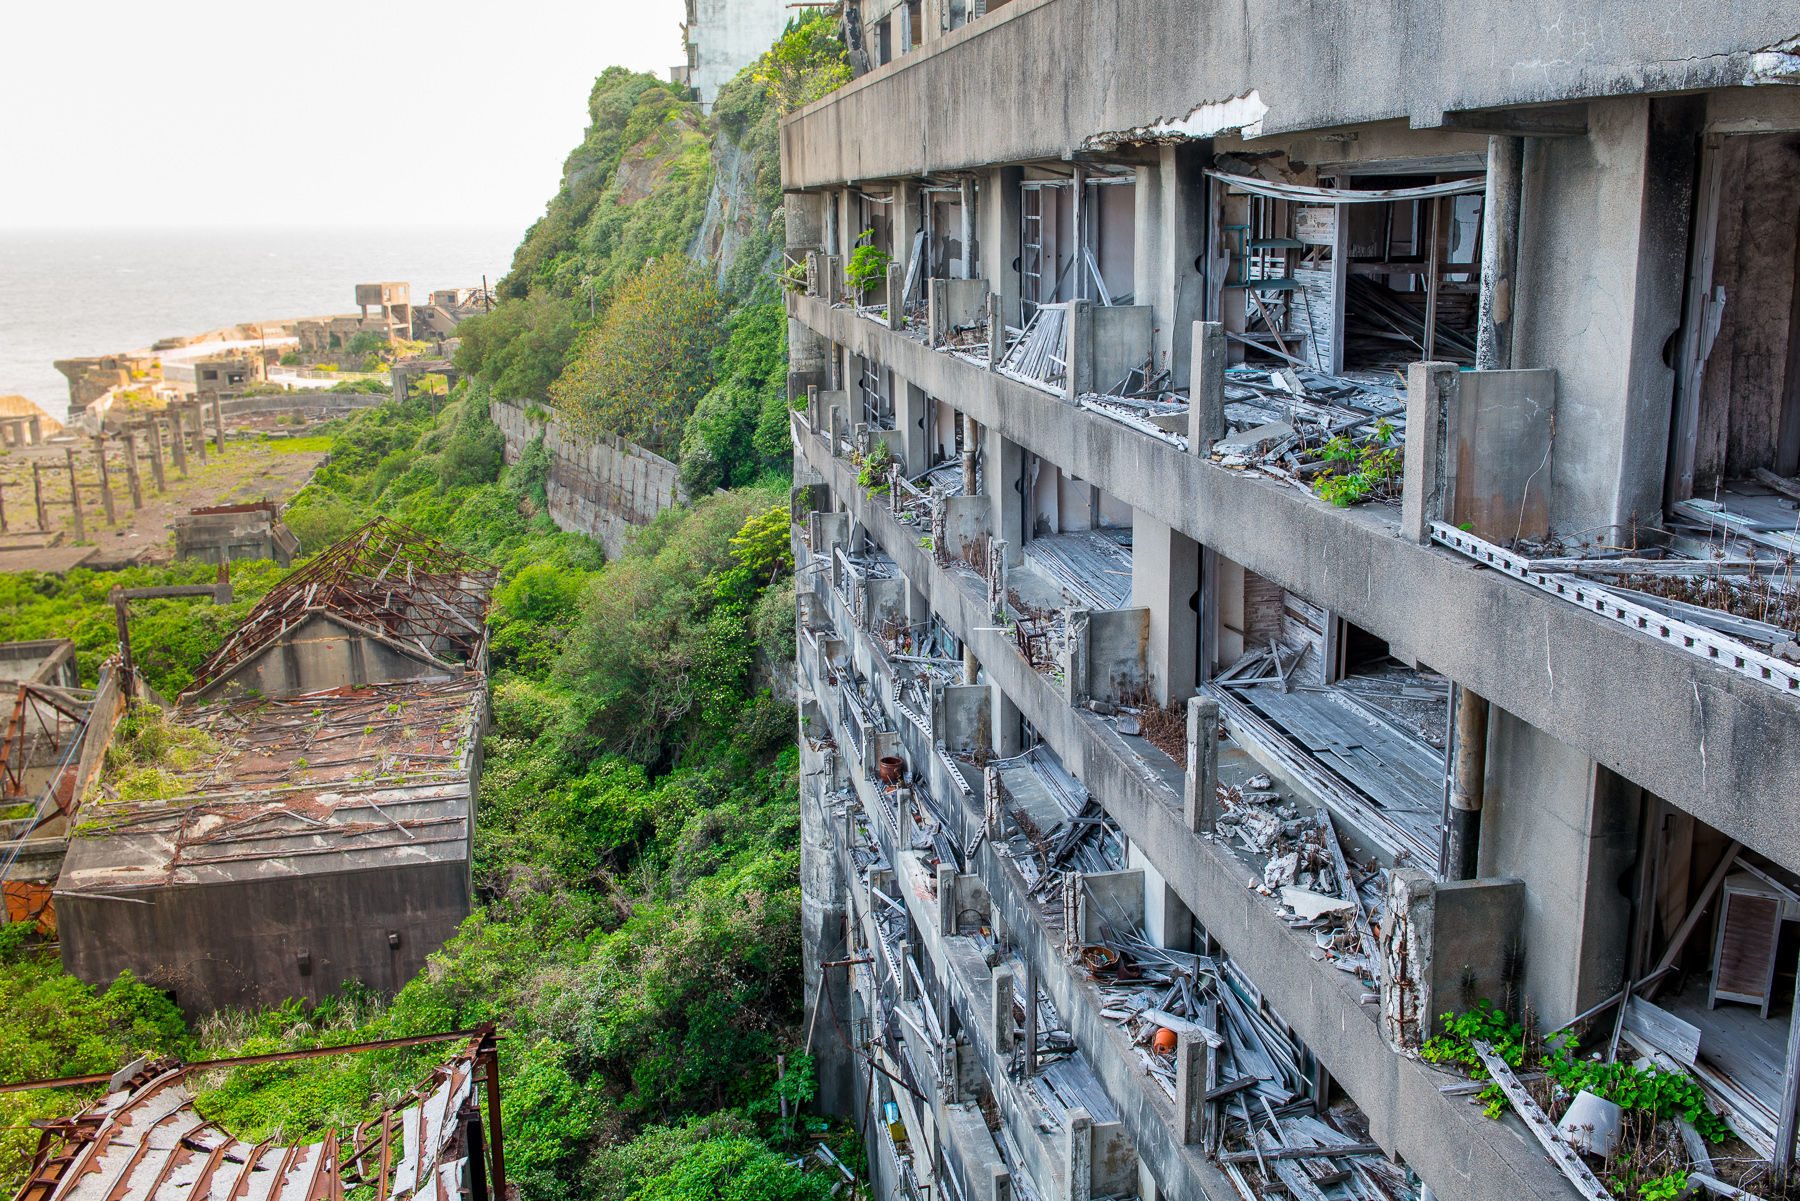 From the school on gunkanjima